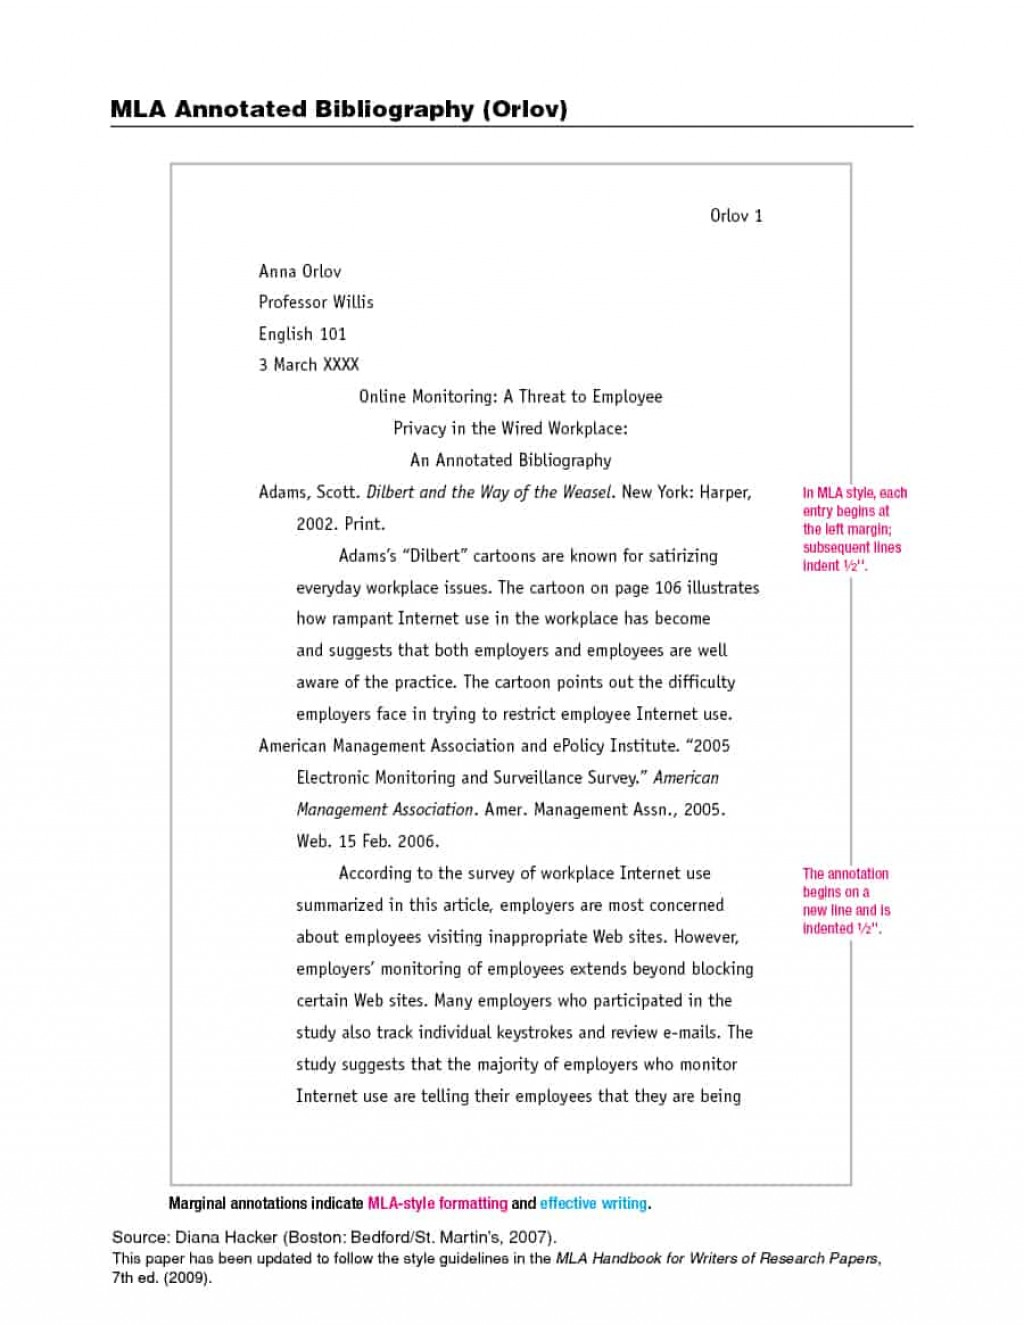 008 Research Paper Mla Format Template Using Style Includes Which Of The Following Breathtaking A Formats Large